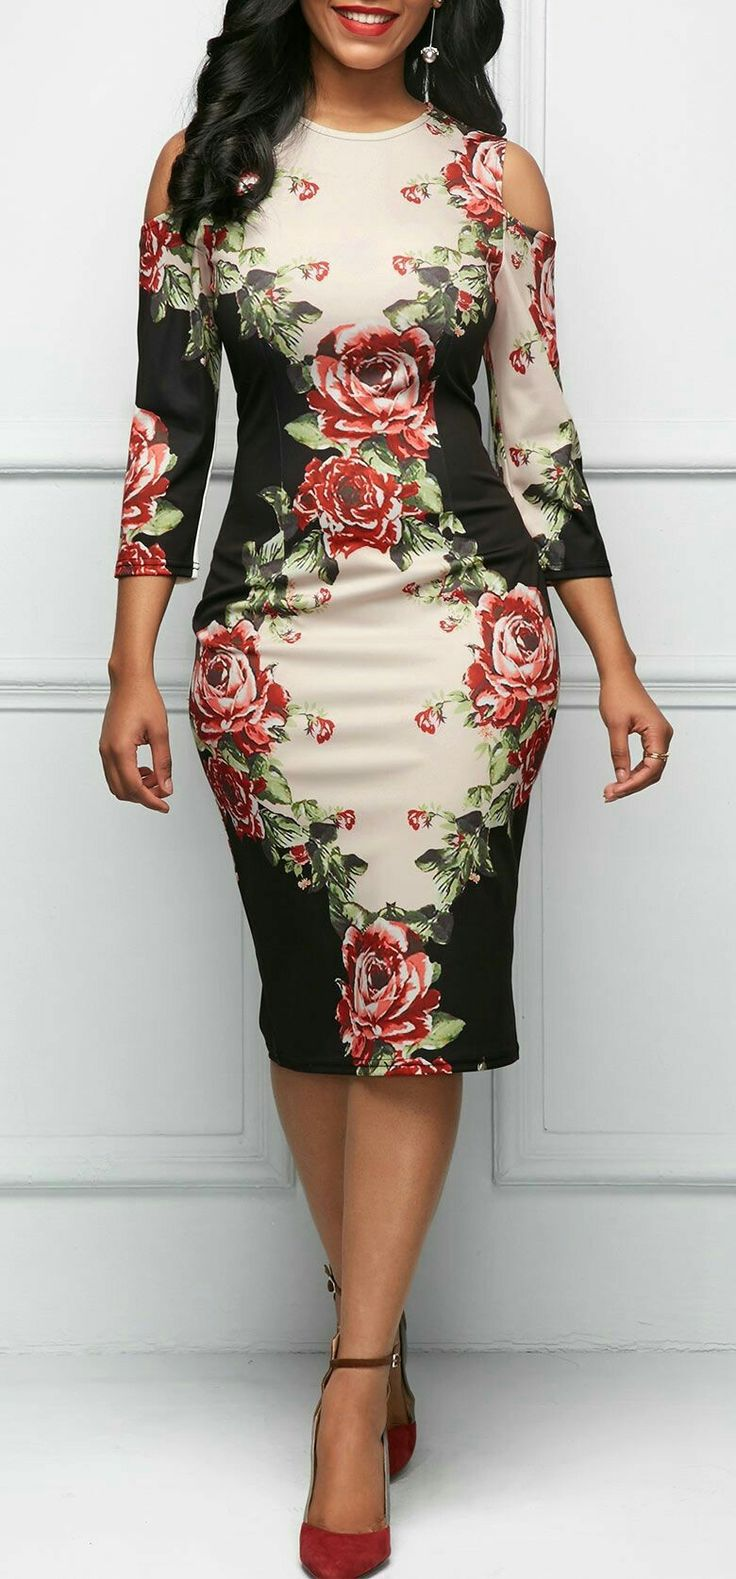 I love the design on this dress!